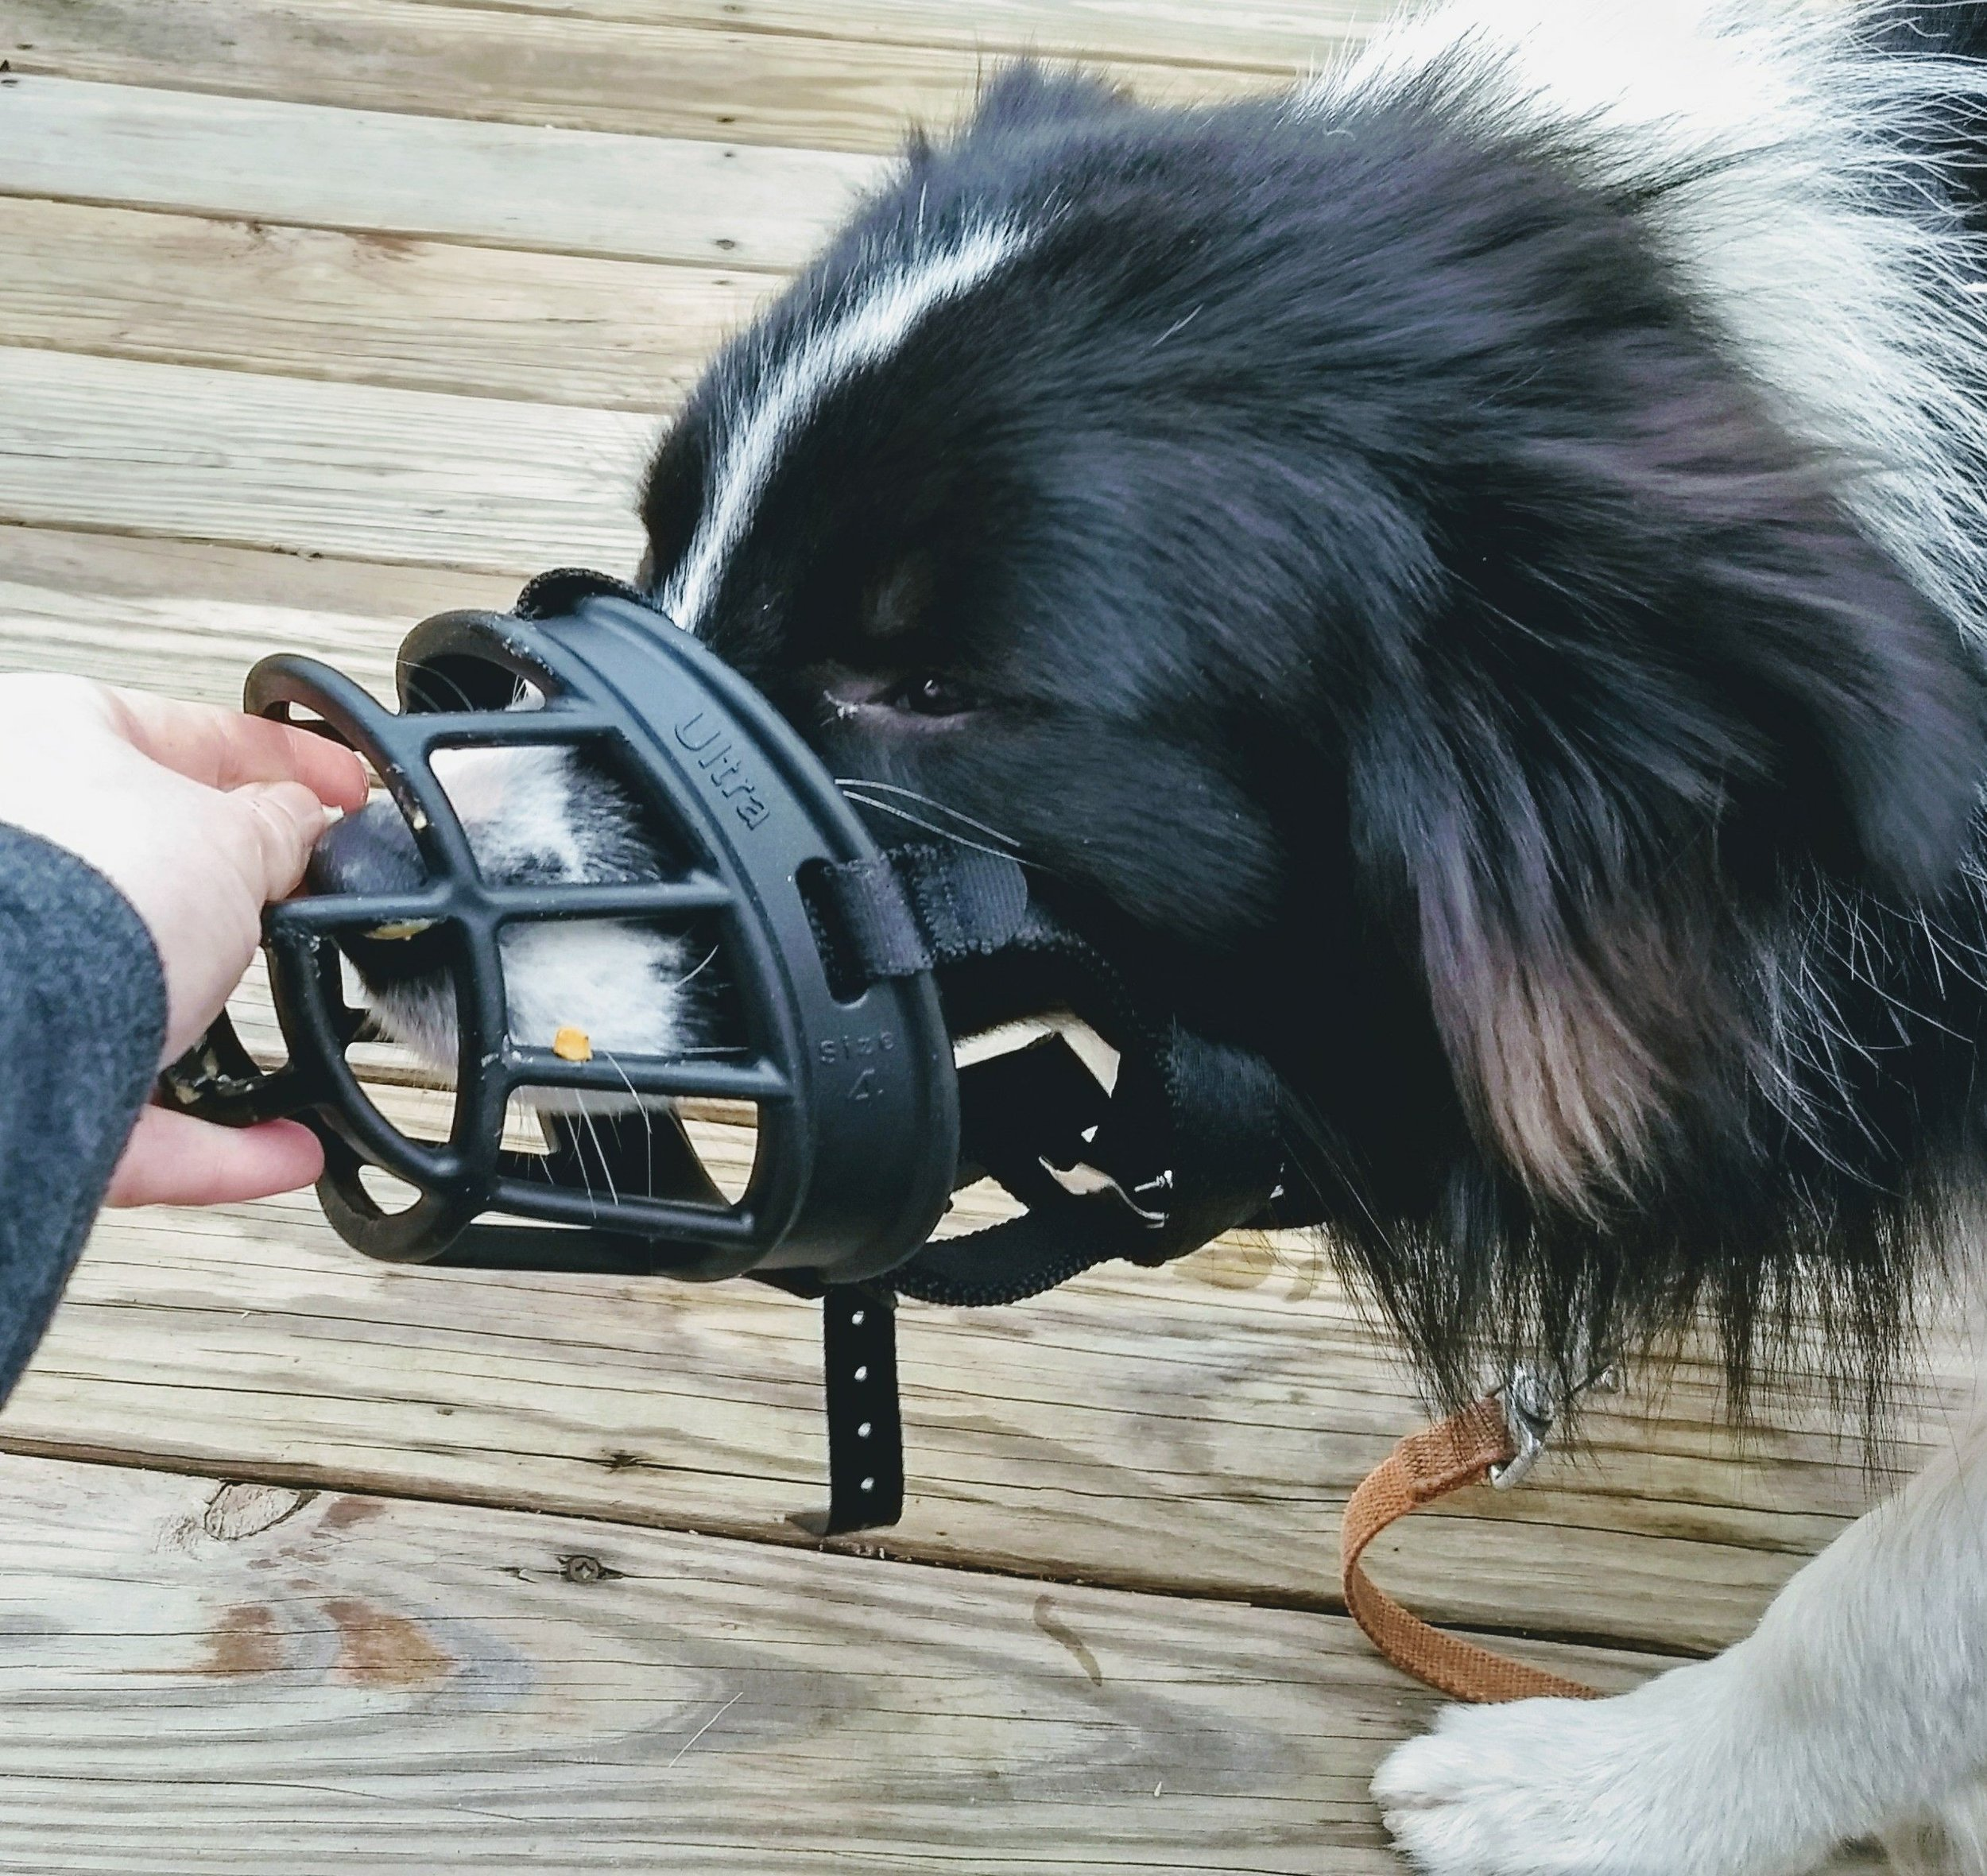 Basket muzzles allow for panting, drinking, and recieving snacks.